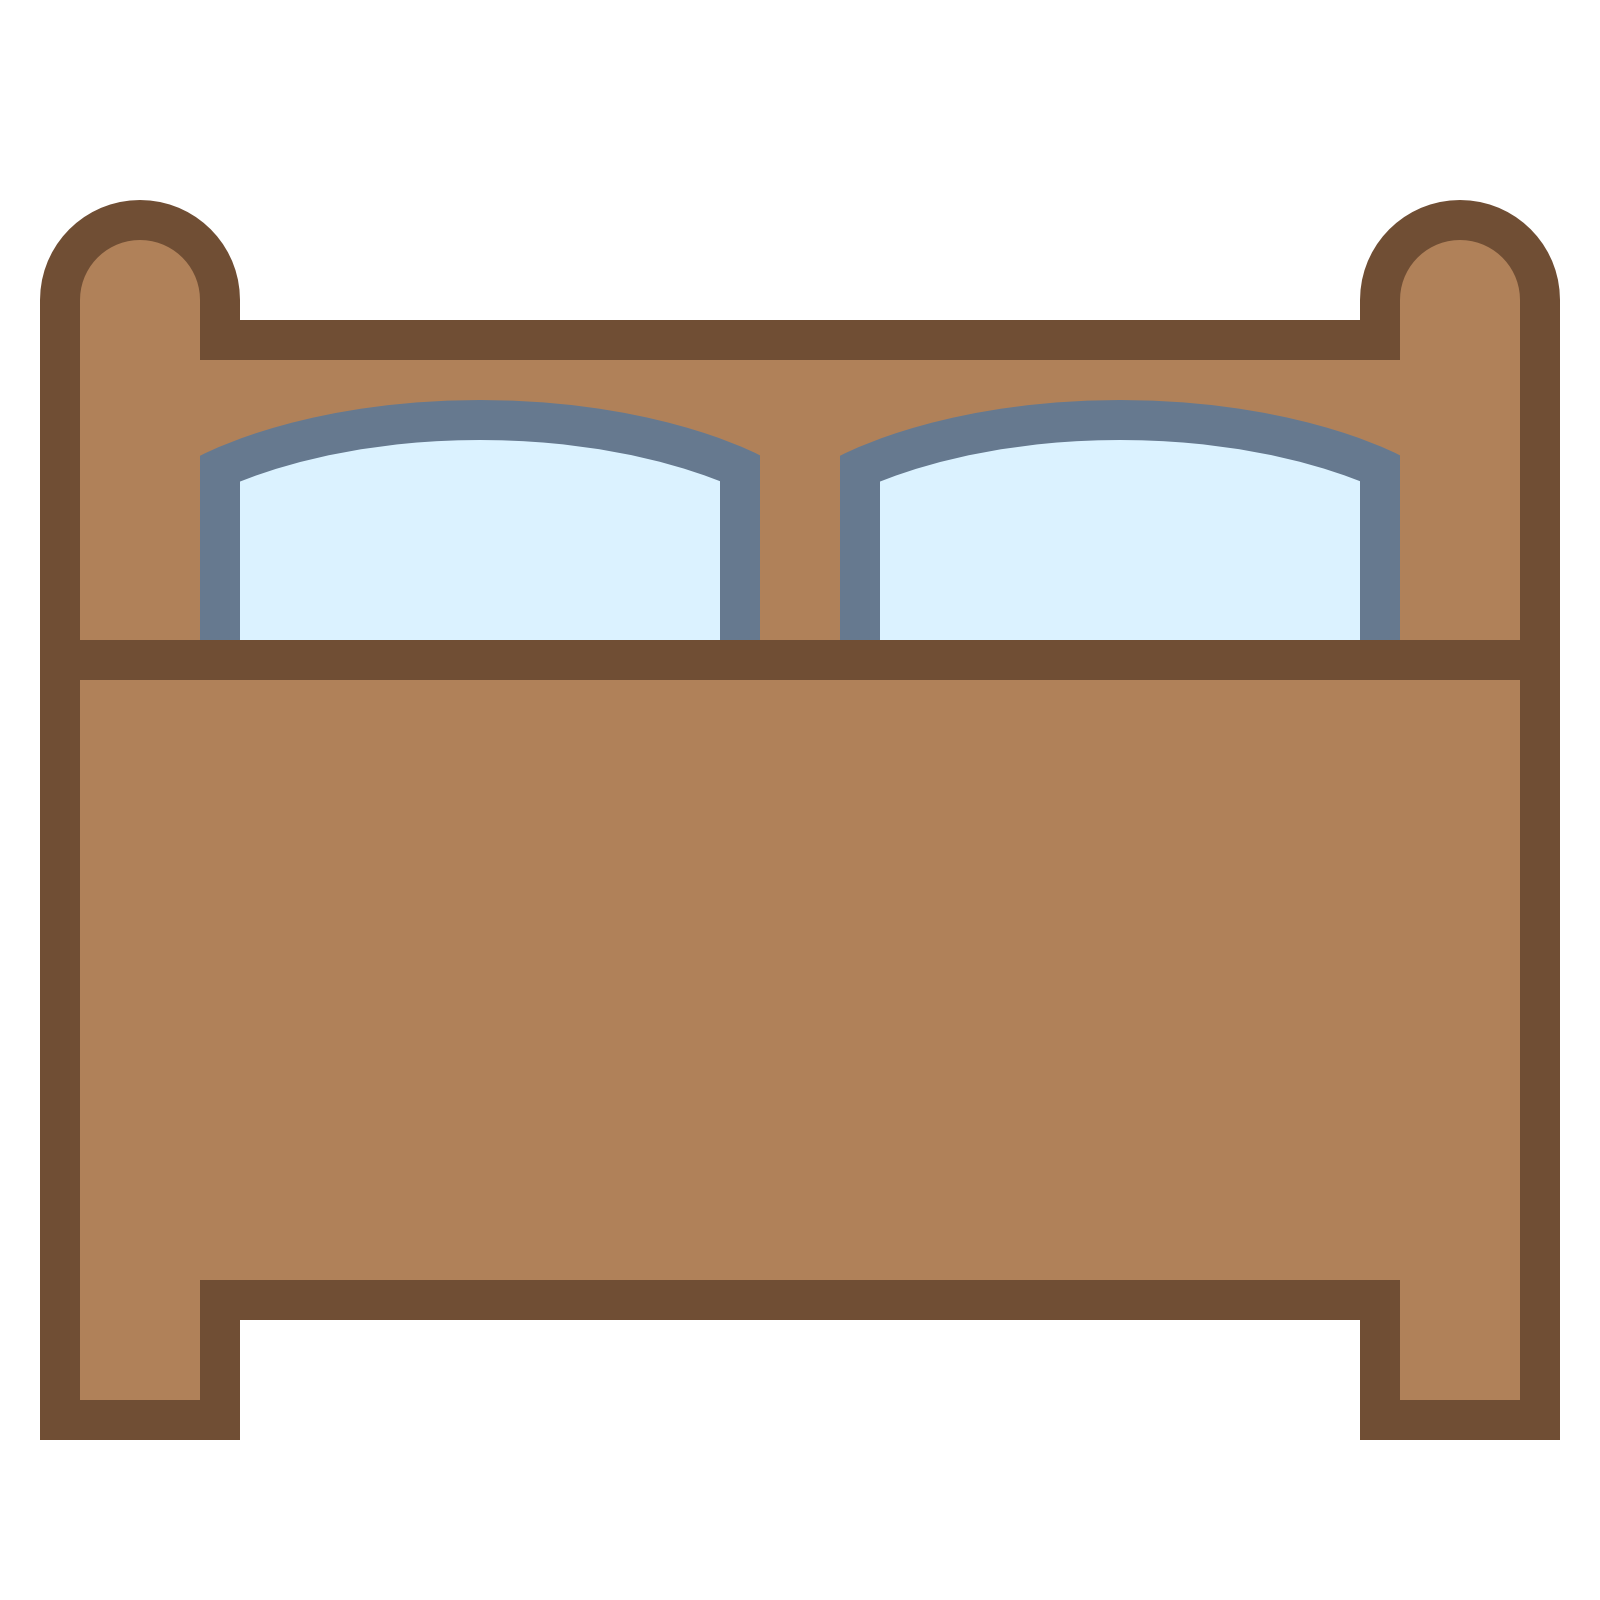 Bed, Bedroom, Home, Hotel, House, Real Estate, Room Icon image #35972